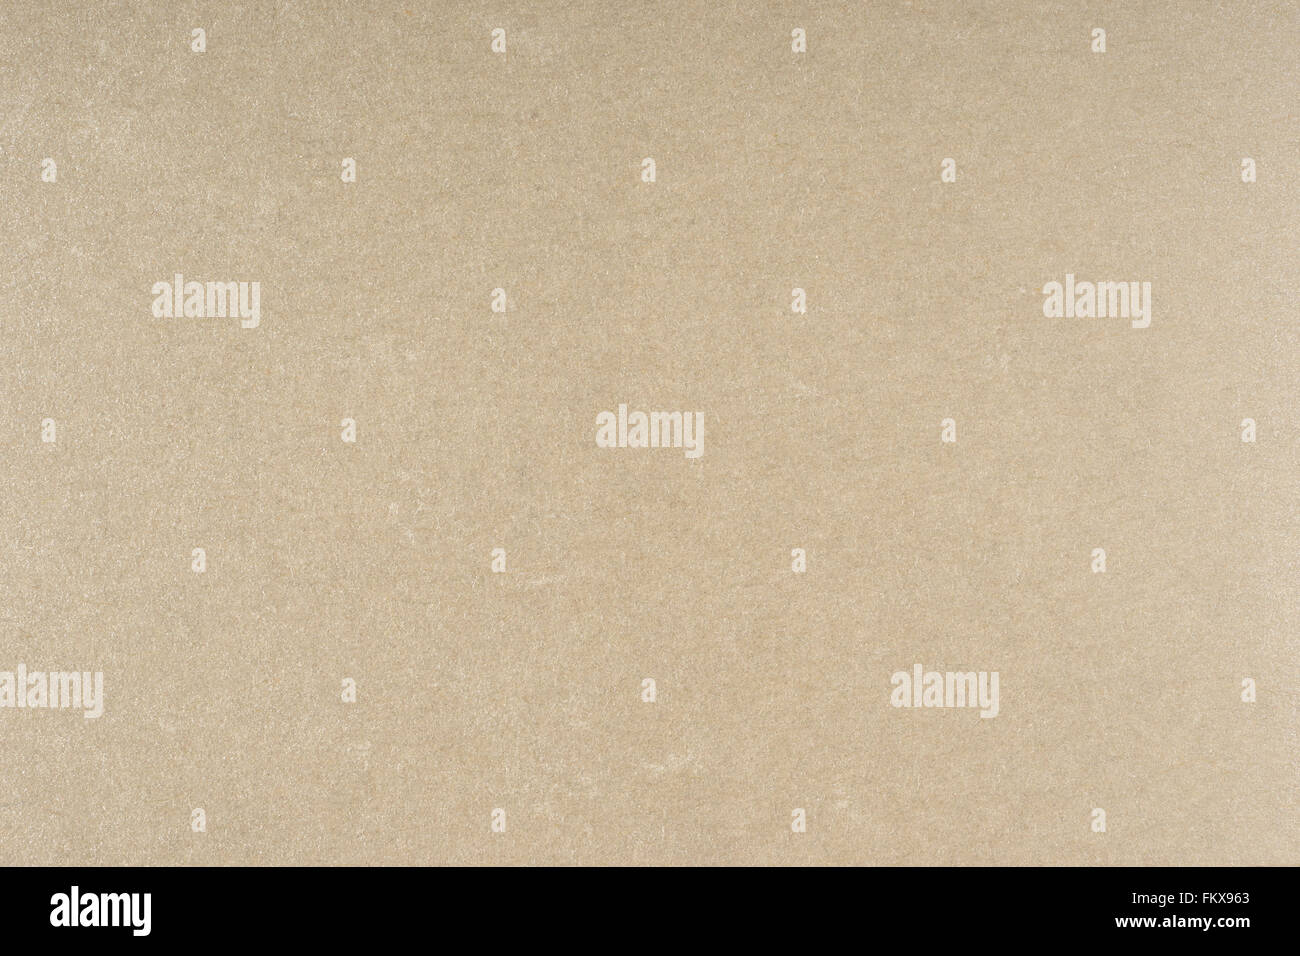 Glittering paper texture background. - Stock Image